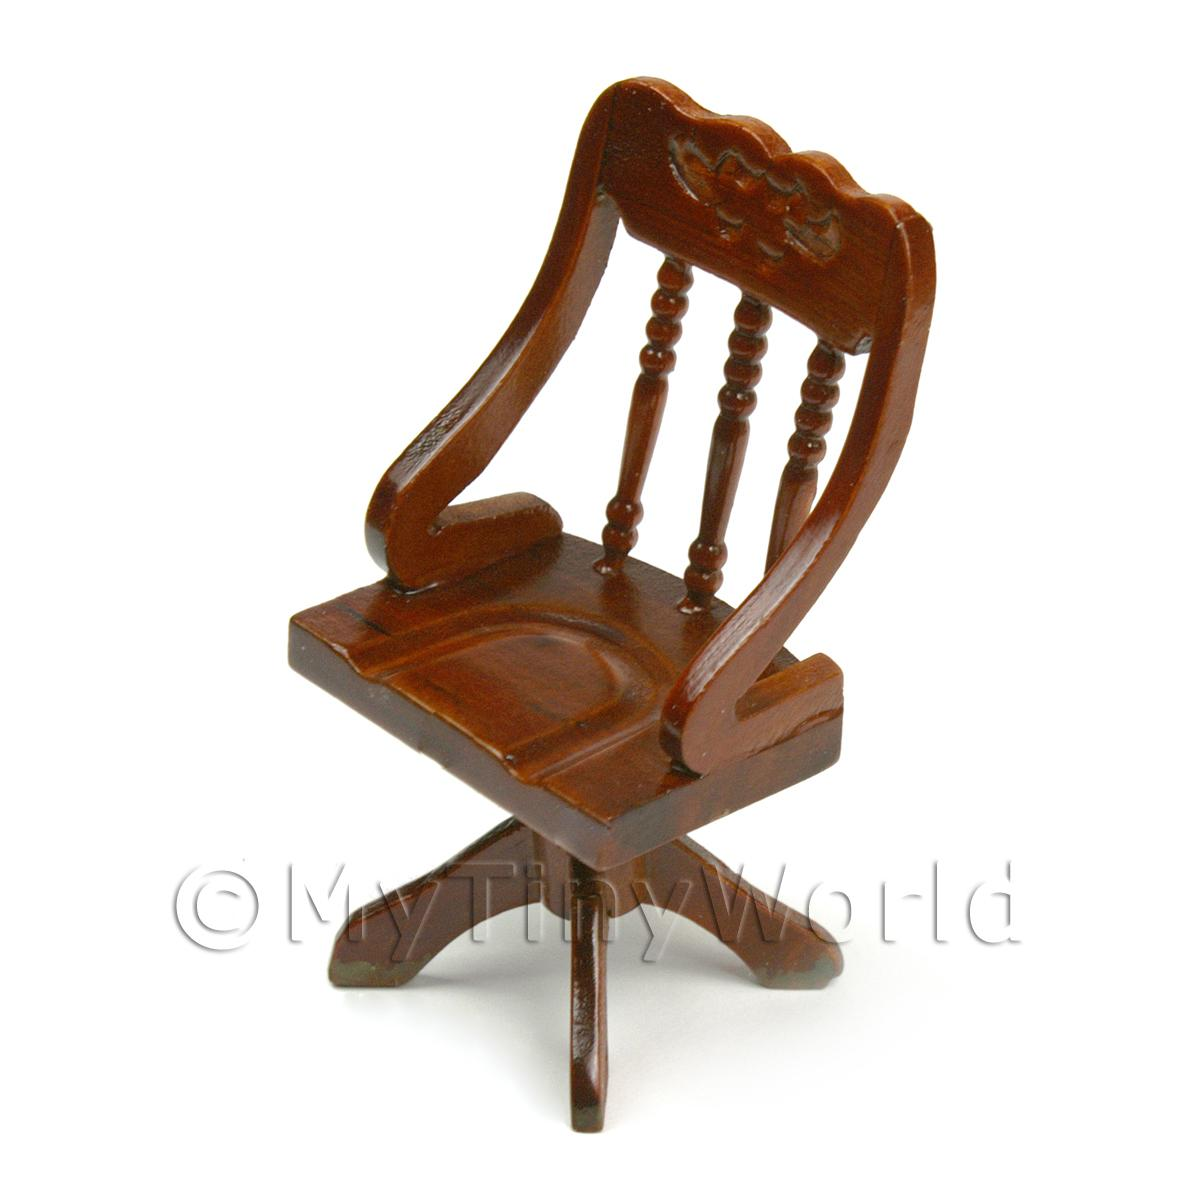 Dolls House Miniature Solid Wood Mahogany Coloured Office Chair